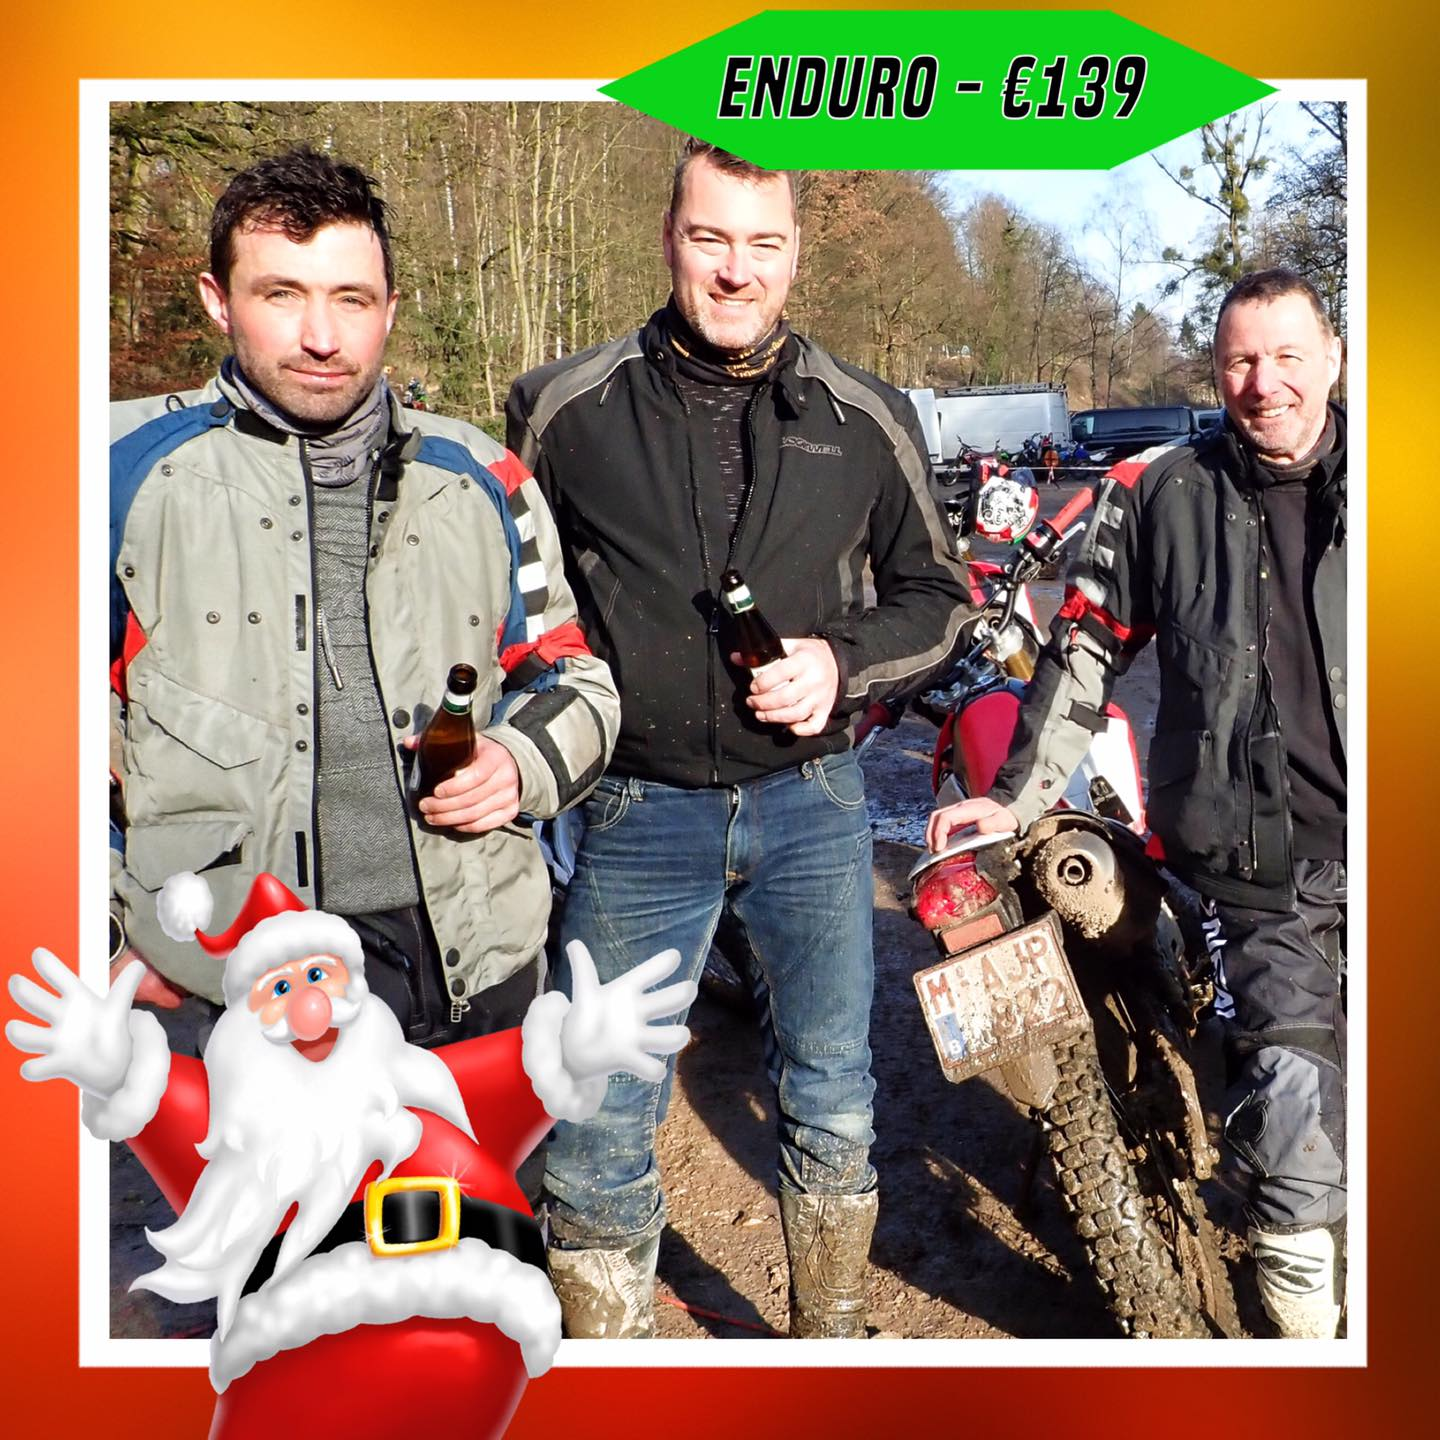 Kerst-initiaties Bilstain Endurofun 15